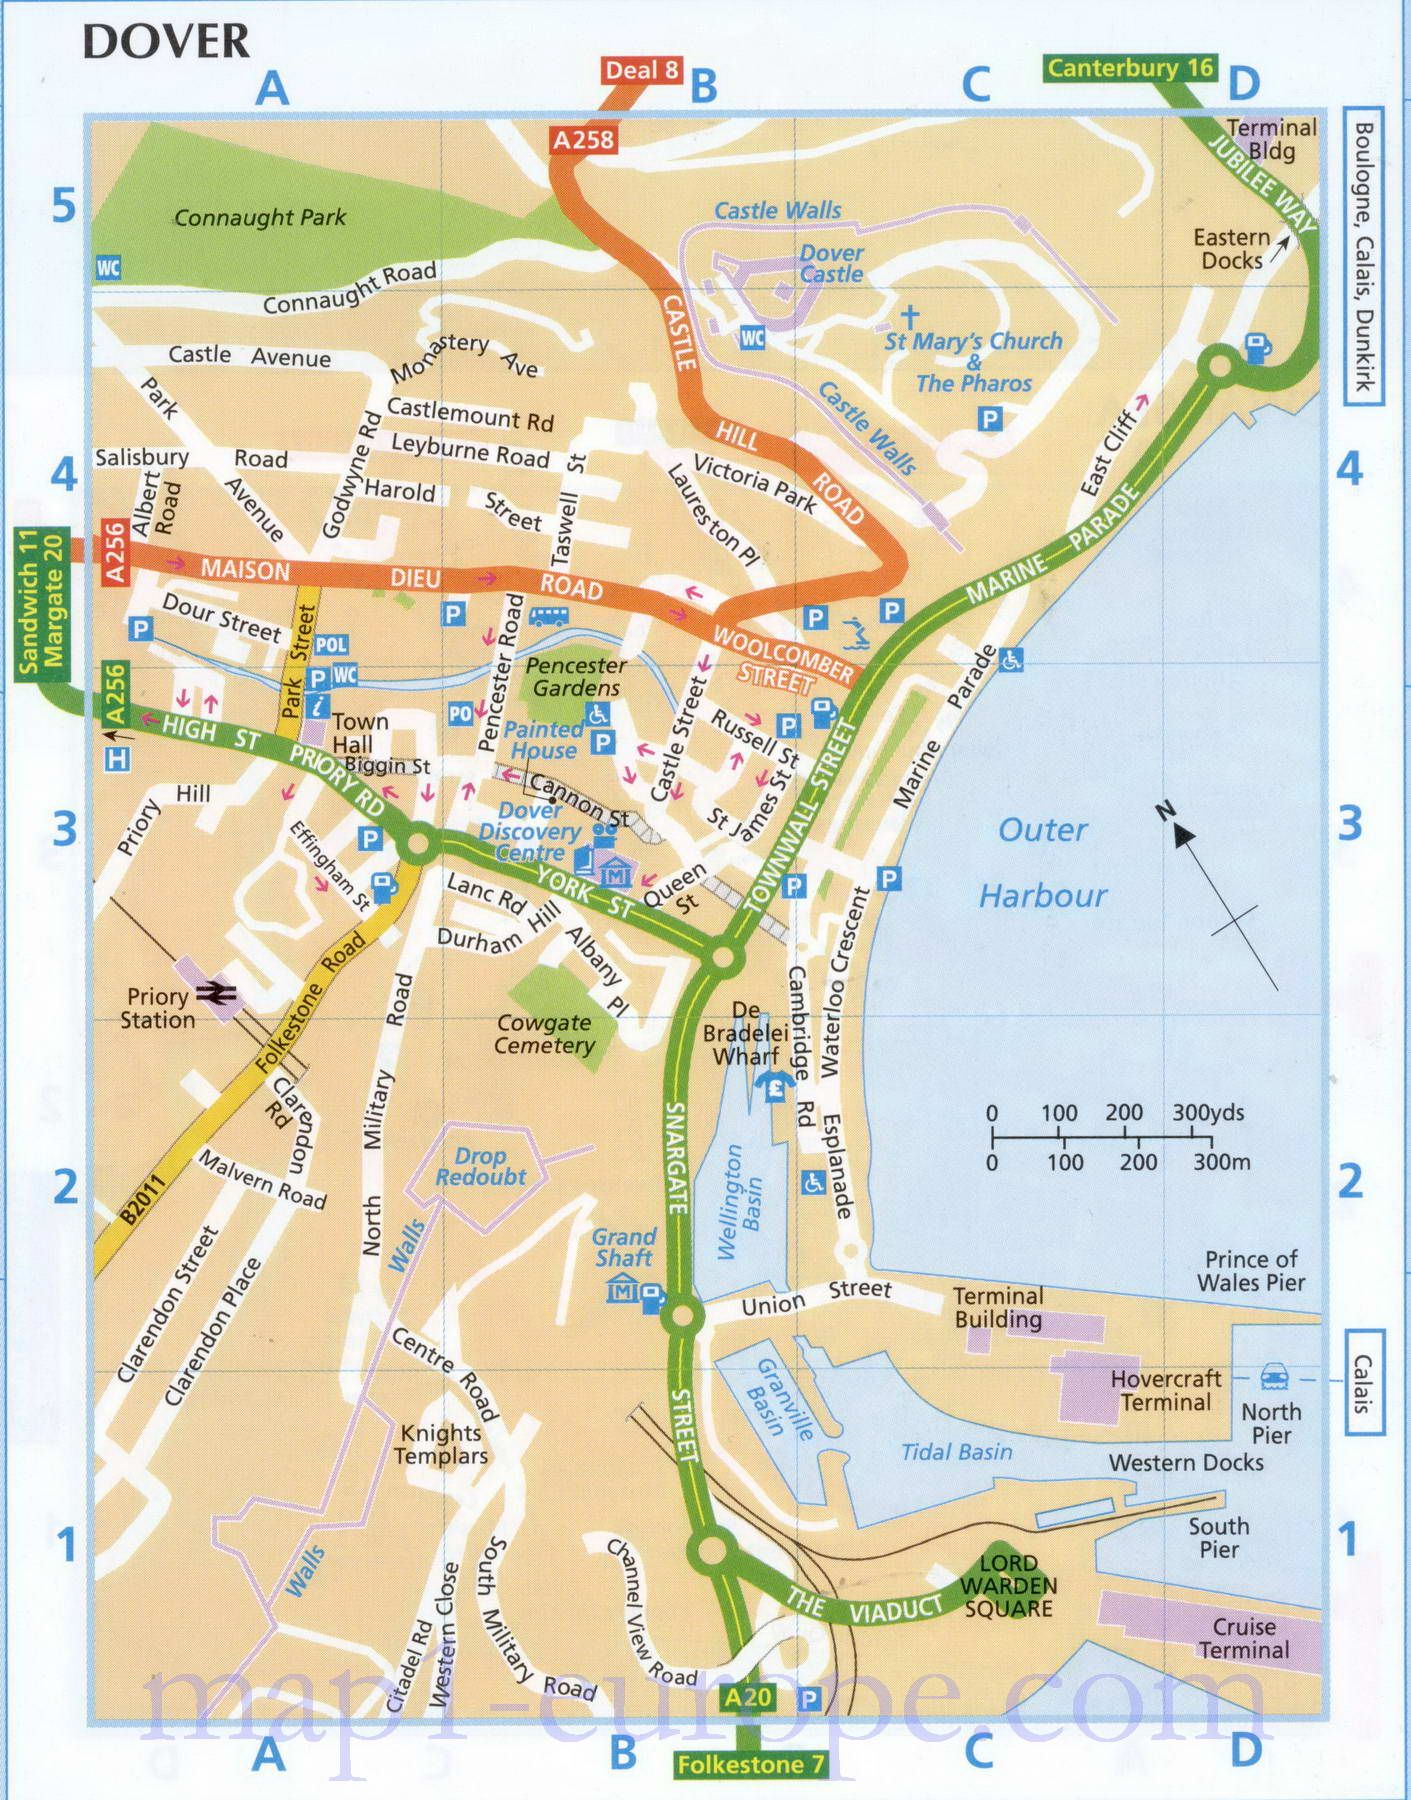 Map Of England Dover.Map Of Dower Detailed Street Map Of Dover England Uk Map Of